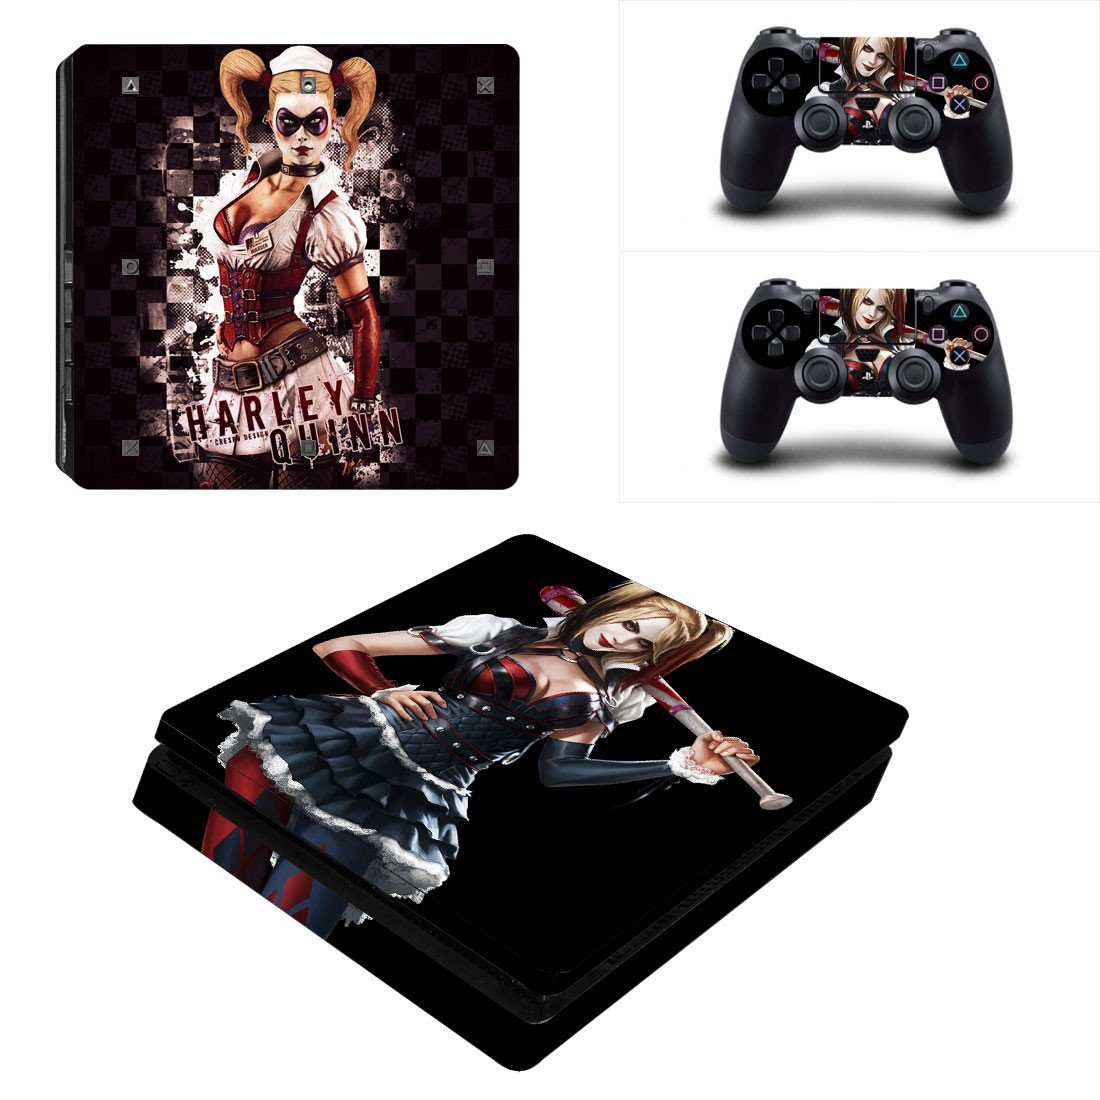 Harley Quin Play Station 4 slim skin decal for console and 2 controllers